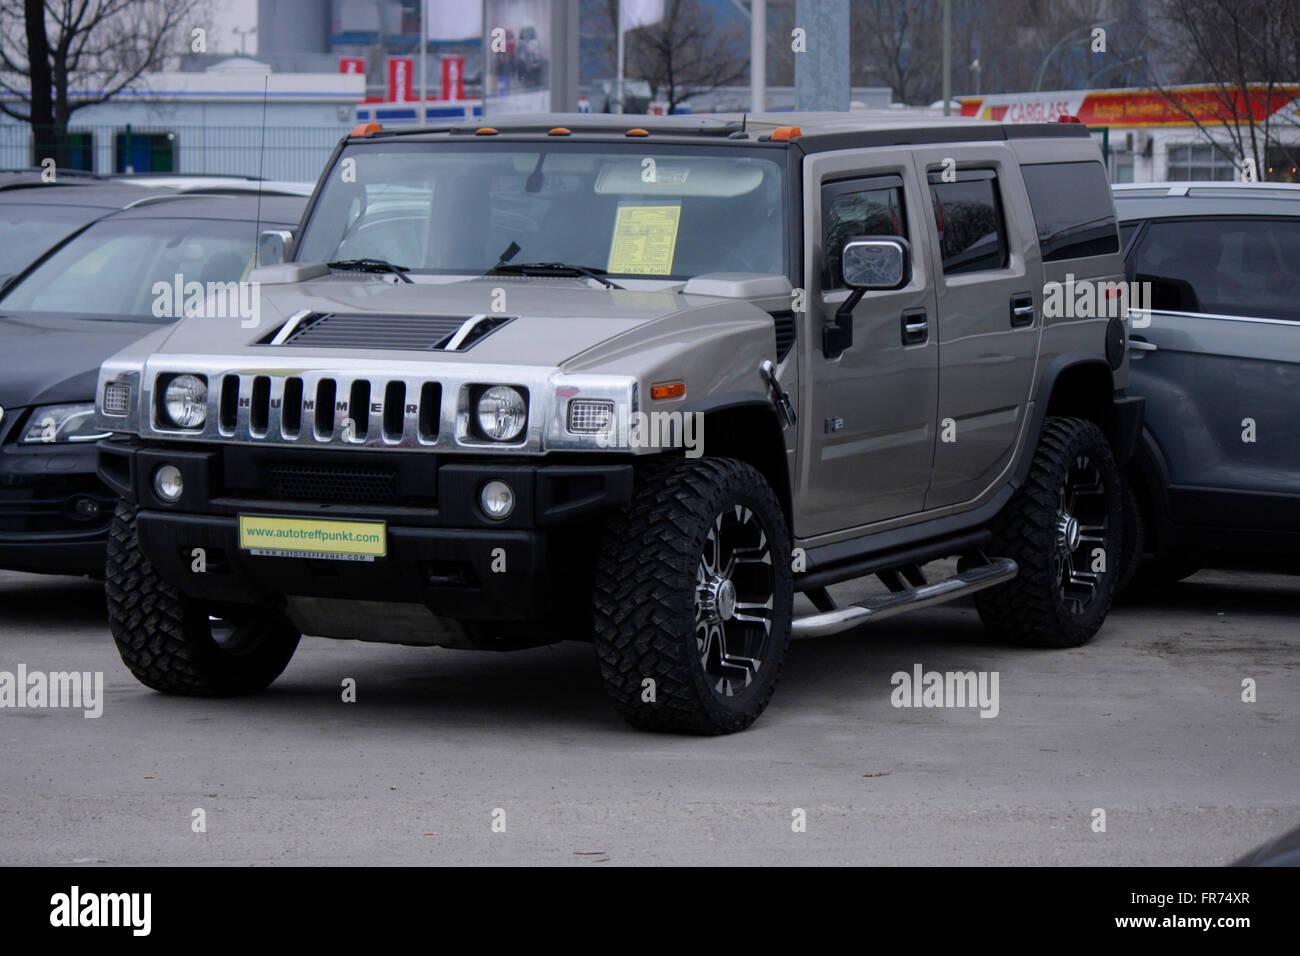 Markenname: 'Hummer', Berlin. - Stock Image